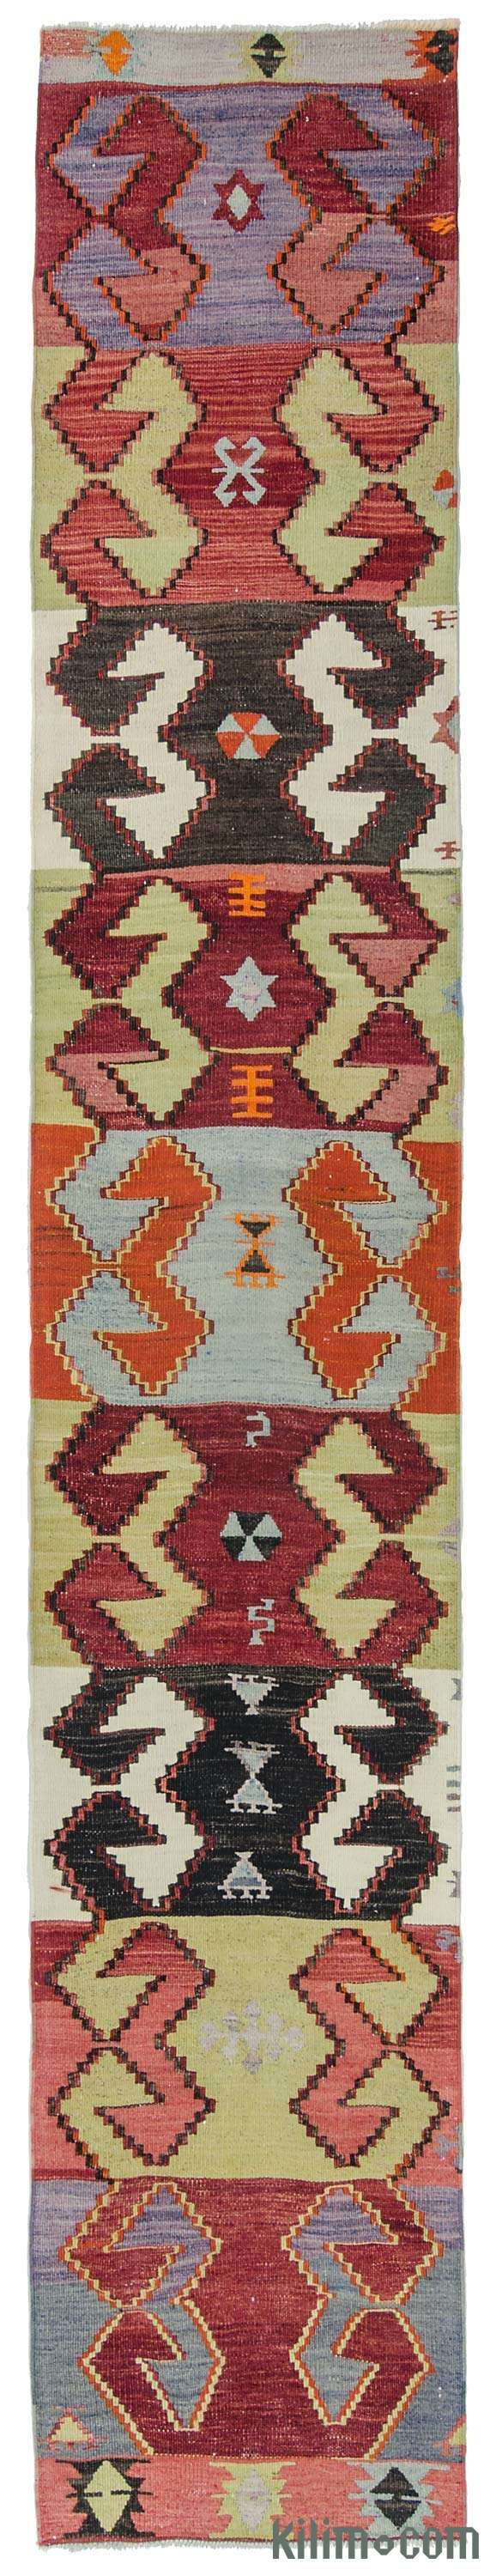 Vintage Turkish kilim runner rug hand-woven in the second half of the 20th century in Afyon located in the Aegean region of Turkey. This kilim is in very good condition.